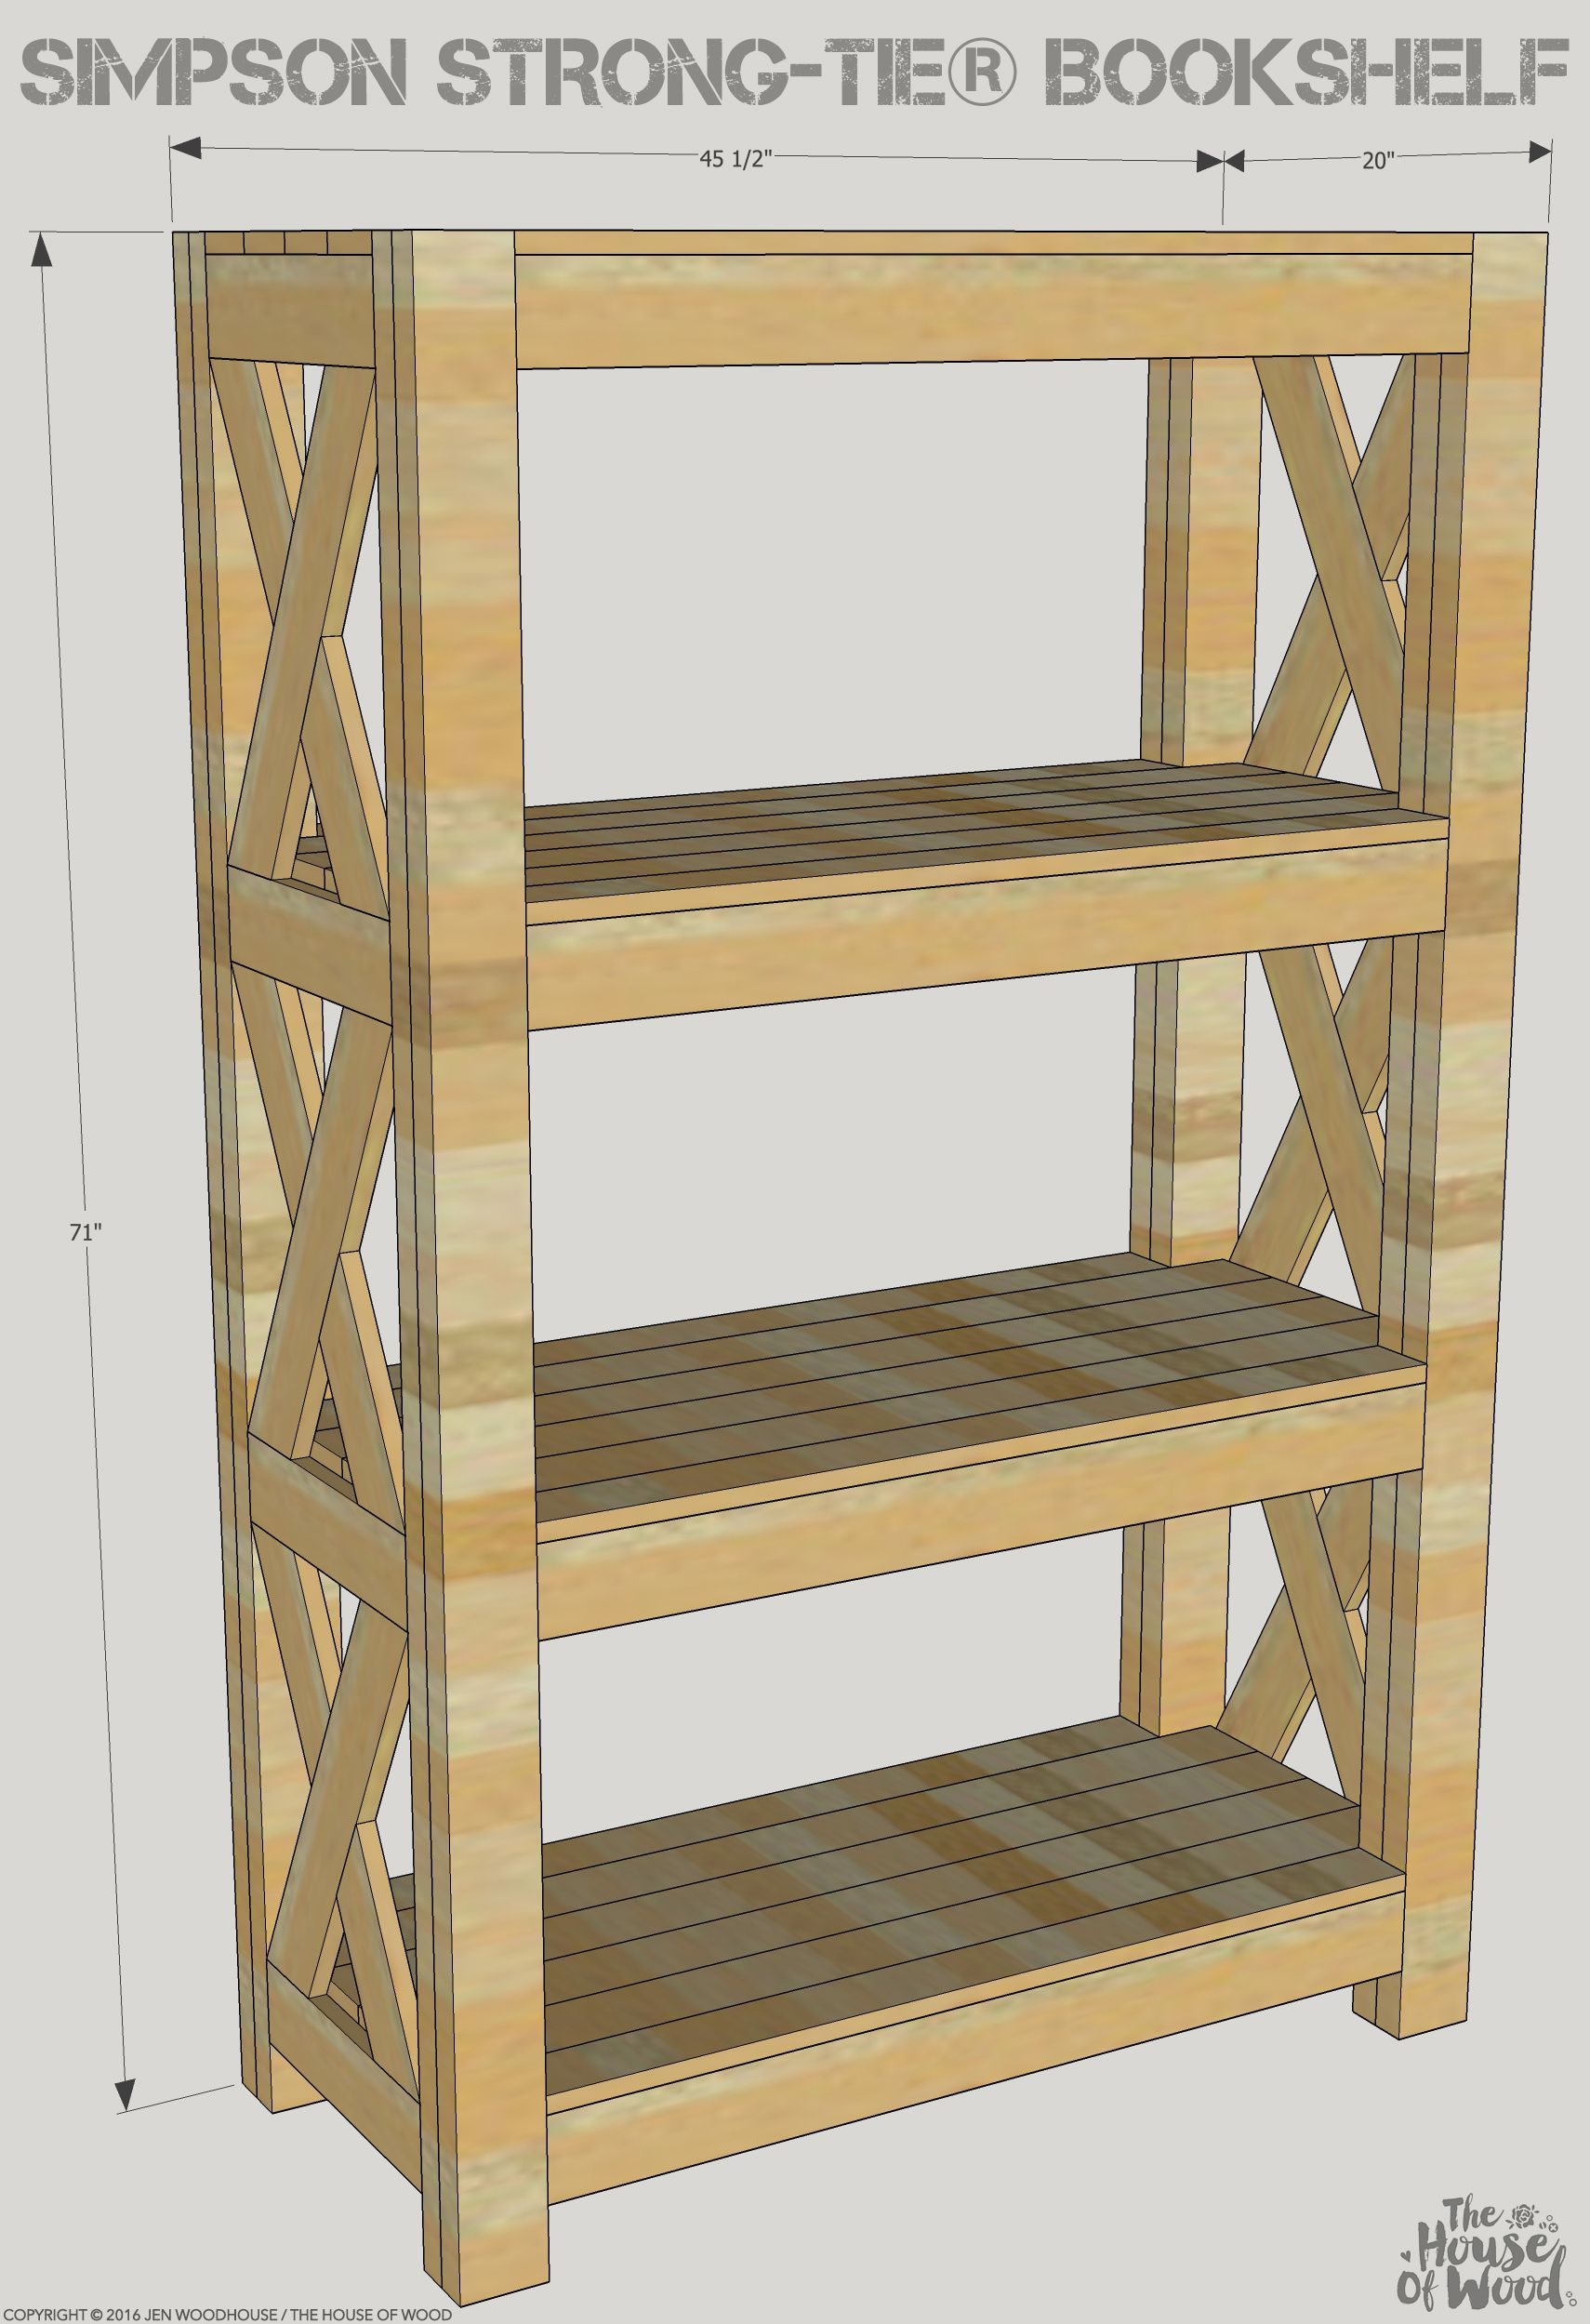 Diy Bookshelf With Simpson Strong Tie Free Woodworking Plans